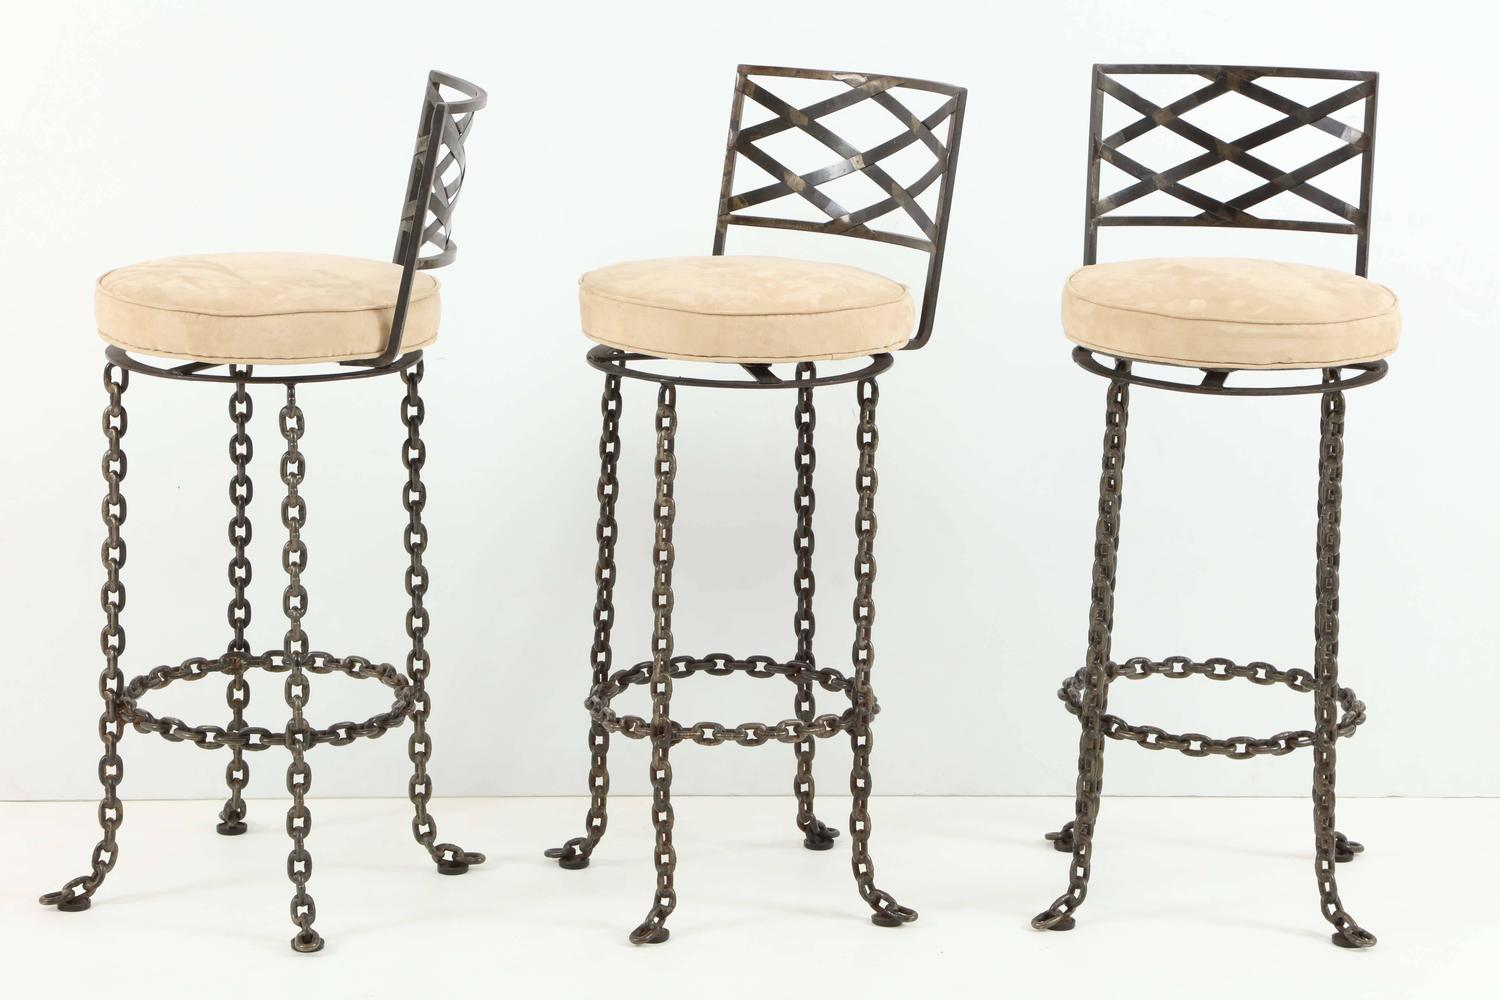 seng chicago chair dining chairs set of 4 india three handmade chain link barstools for sale at 1stdibs